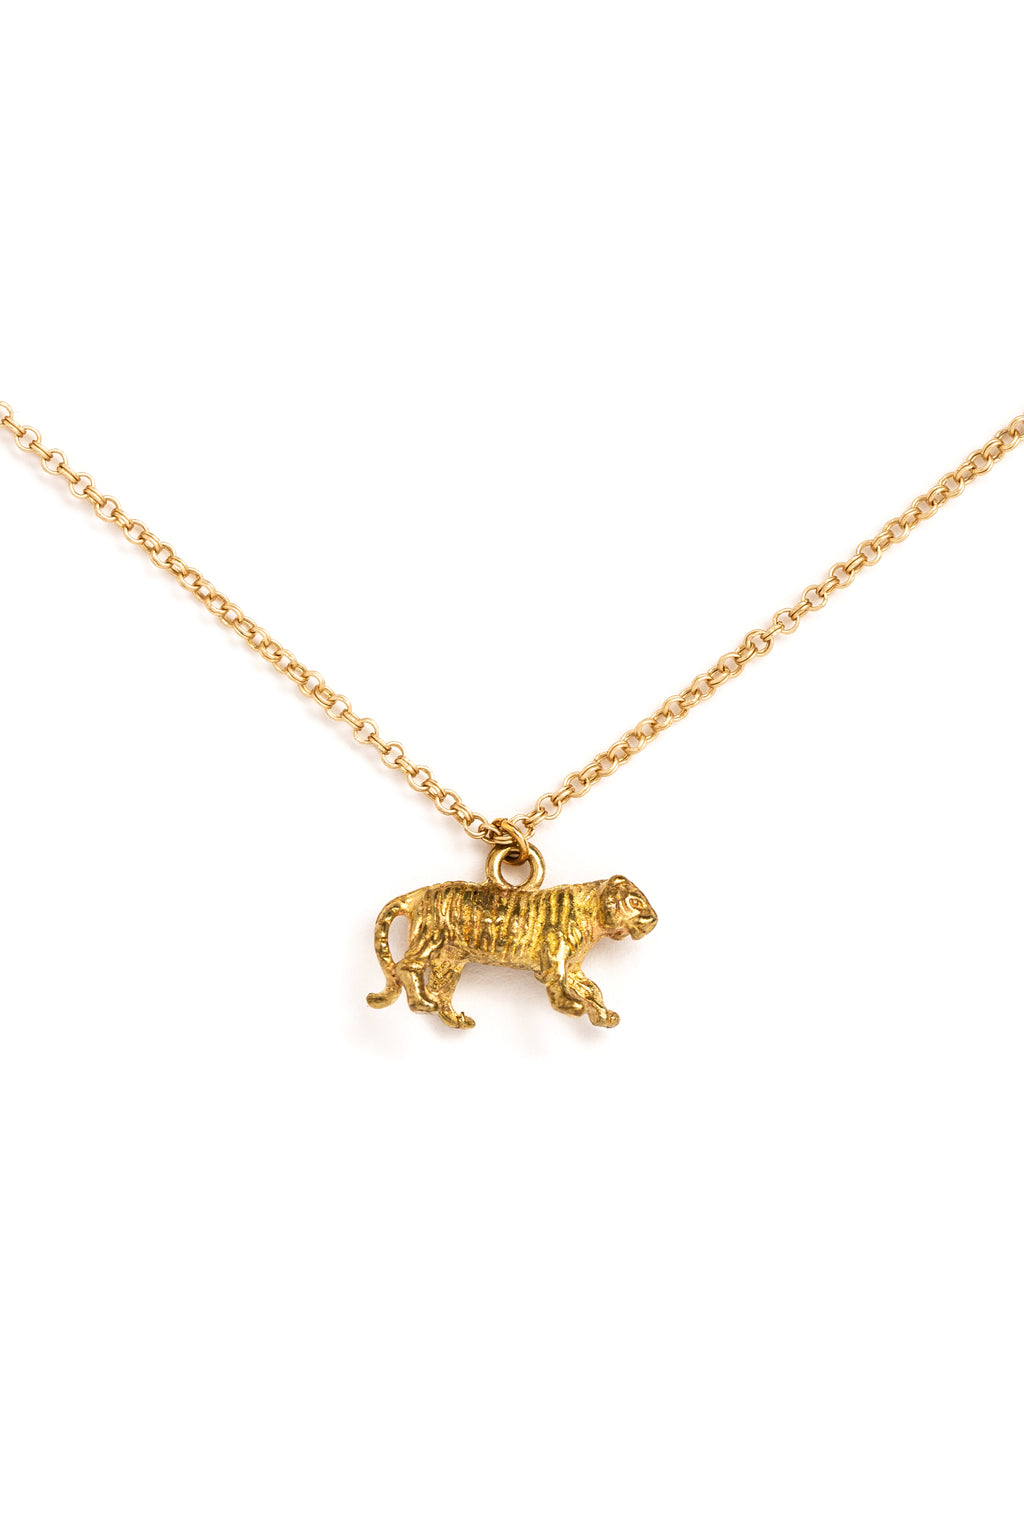 Brass Tiger Charm Necklace on Gold Chain (closeup)